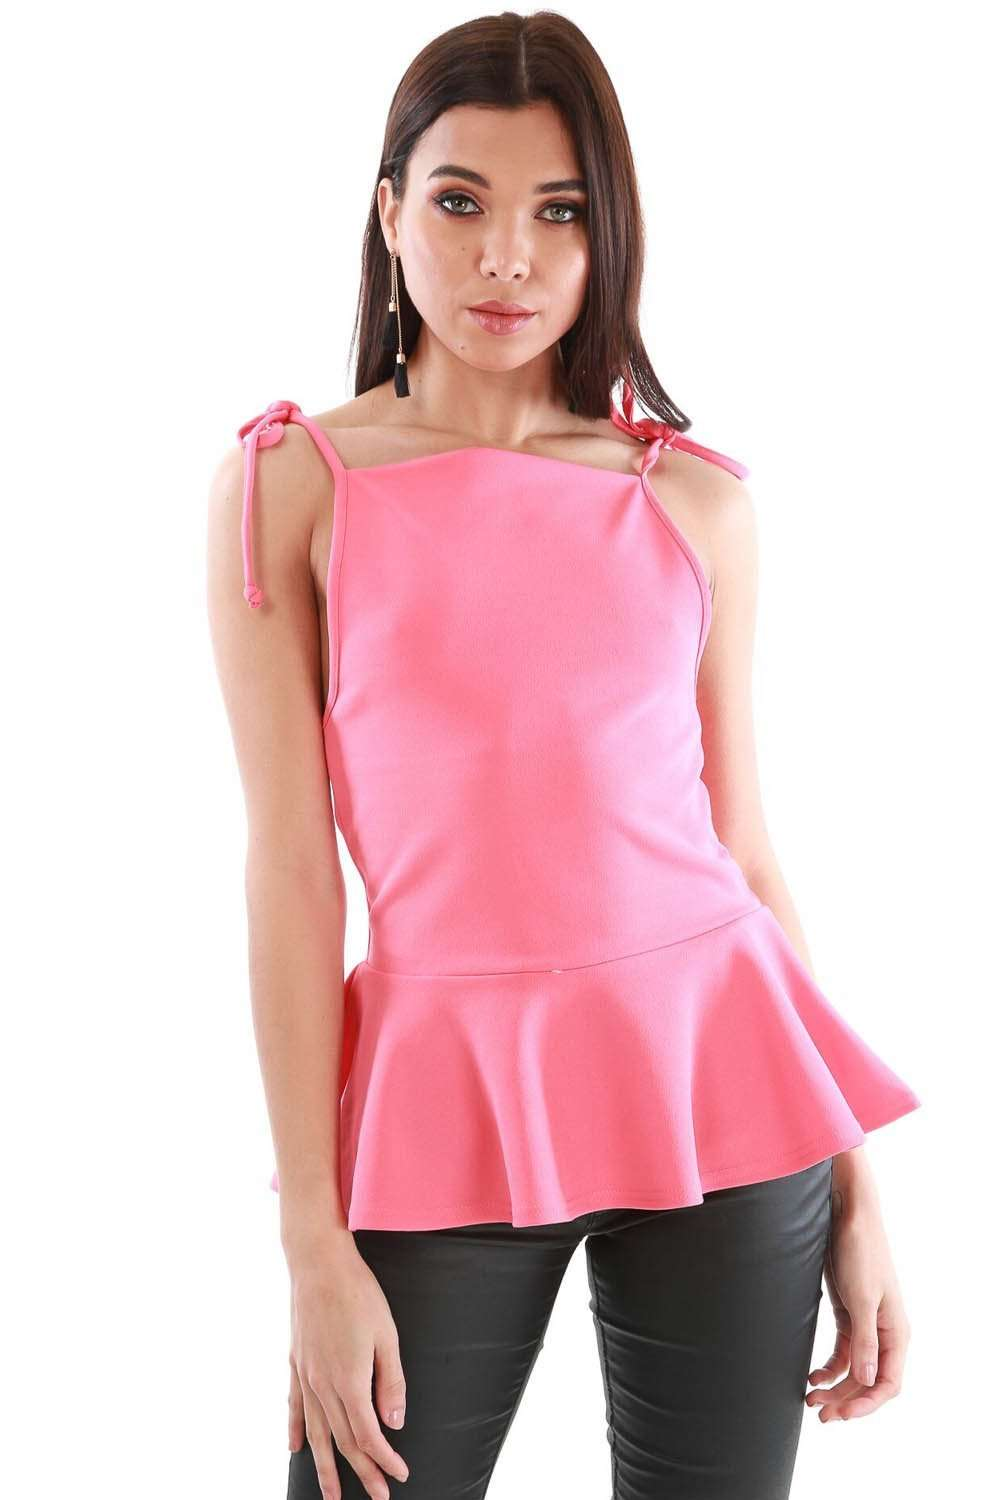 Strappy Coral Square Tie Neck Peplum Frill Top - bejealous-com